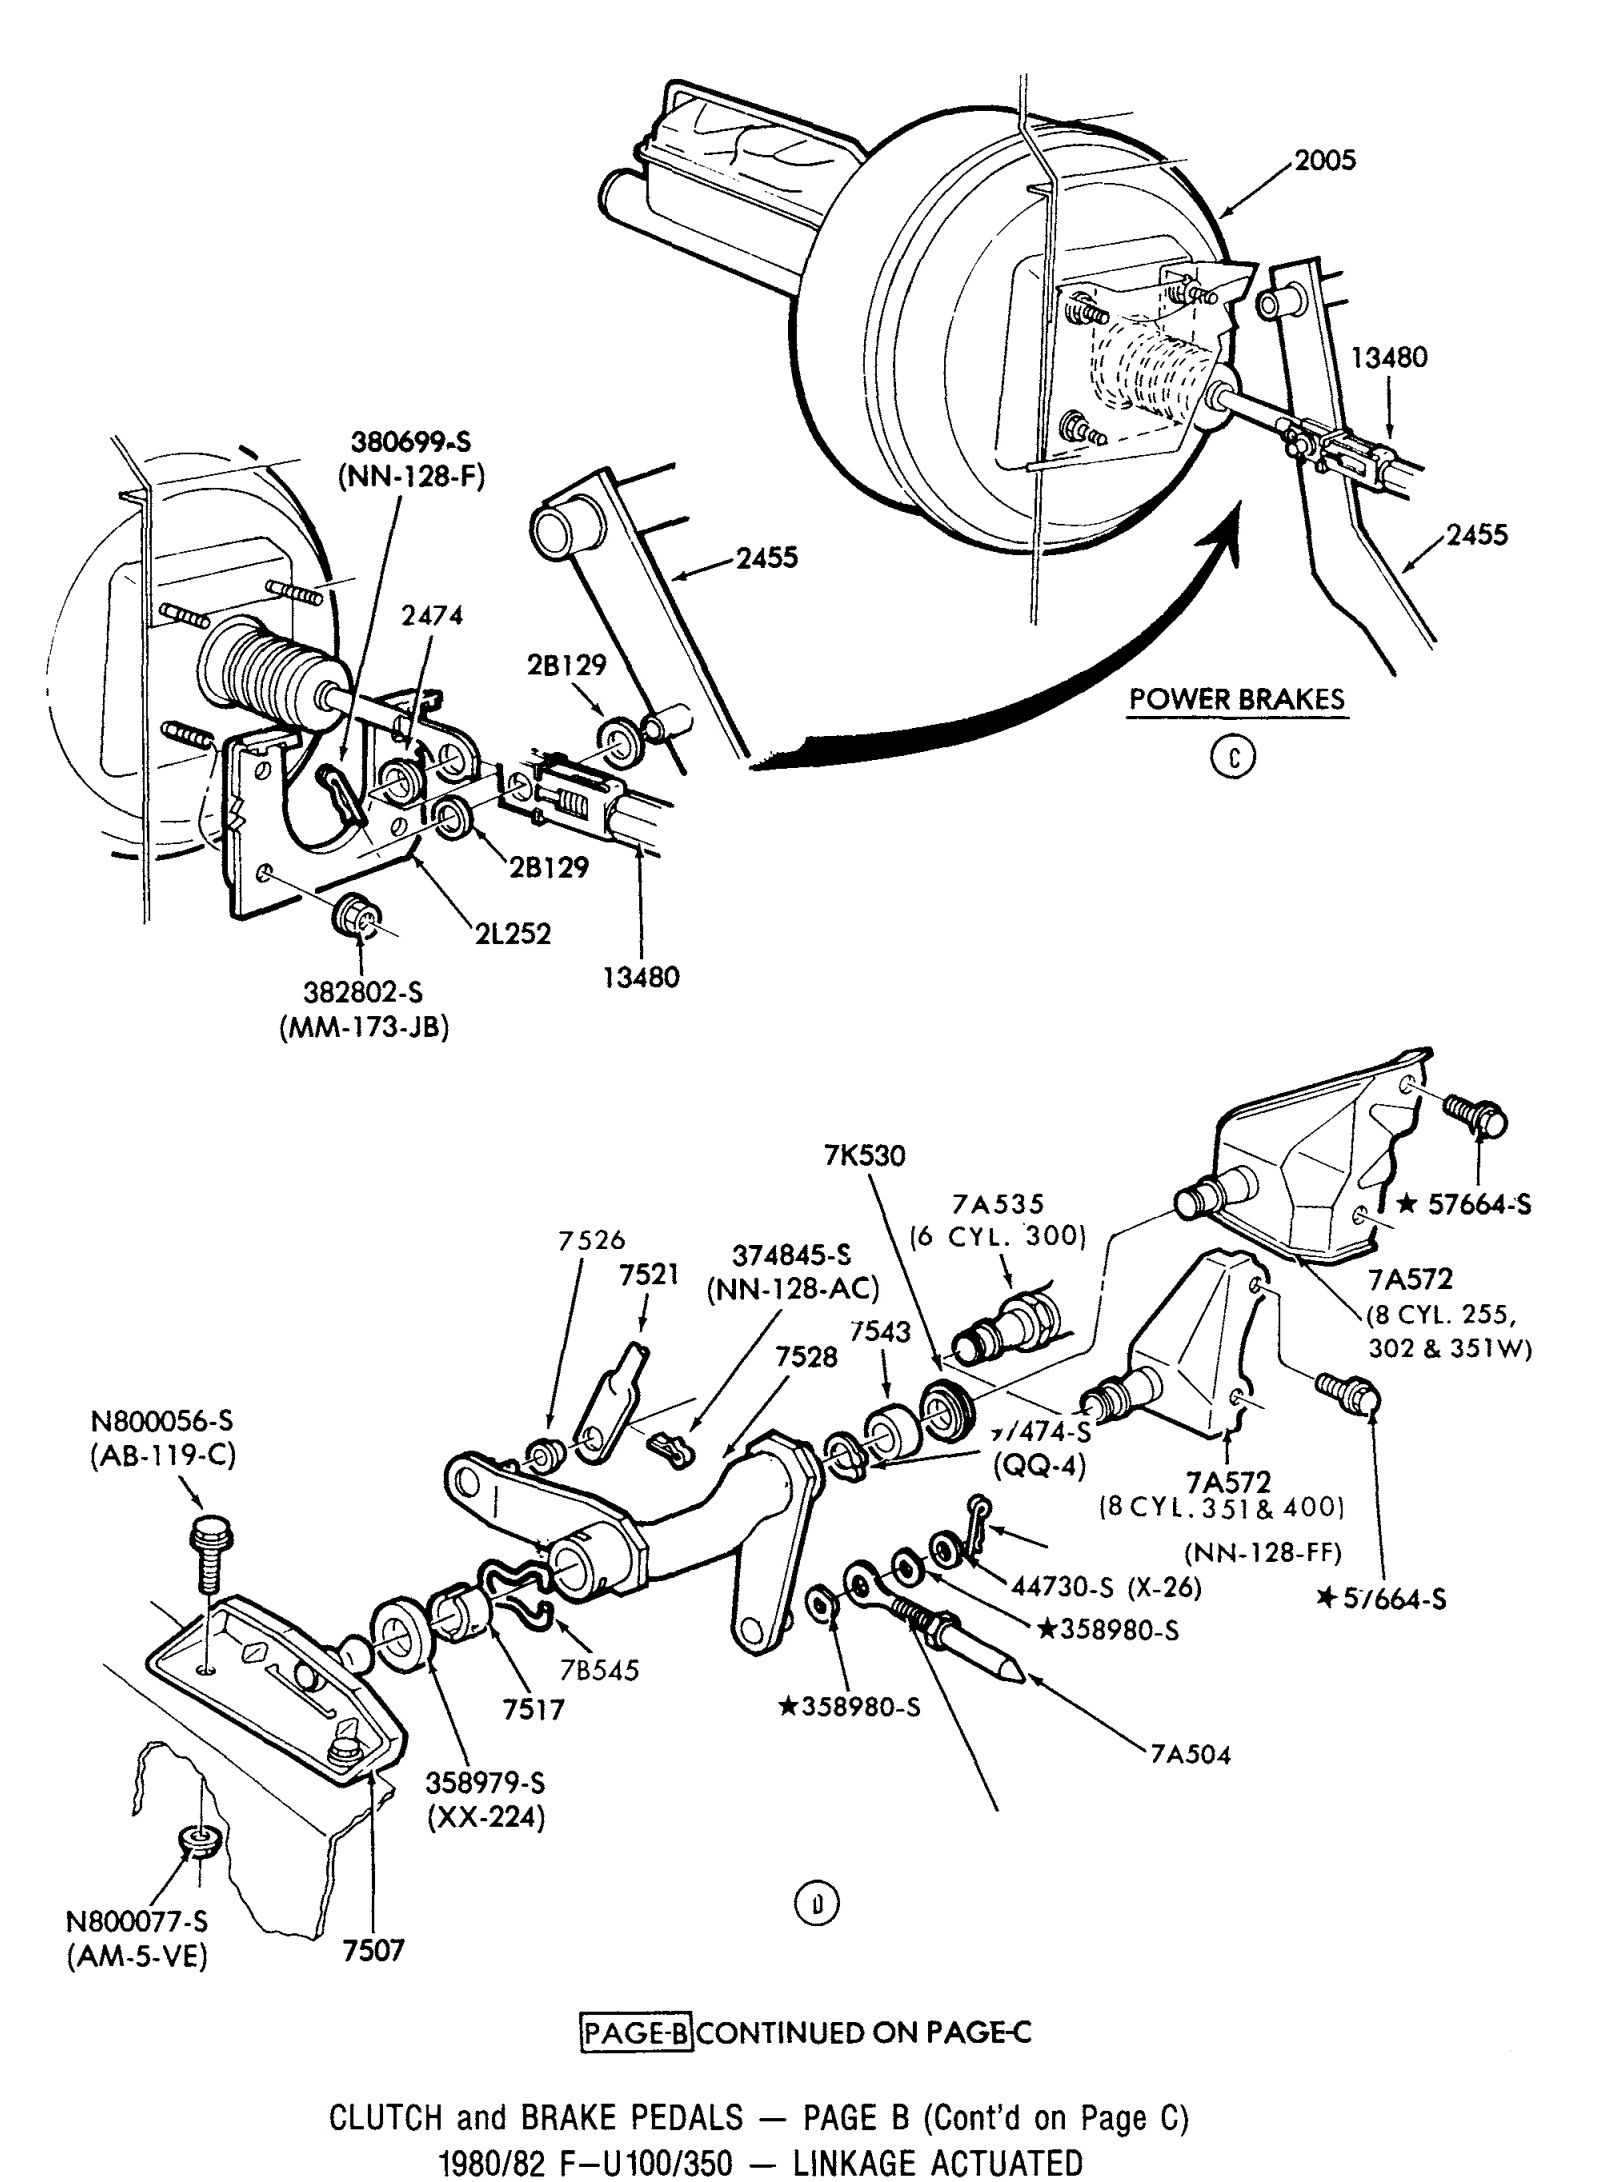 hight resolution of f150 clutch diagram wiring diagram lyc 1996 ford f150 clutch diagram f150 clutch diagram